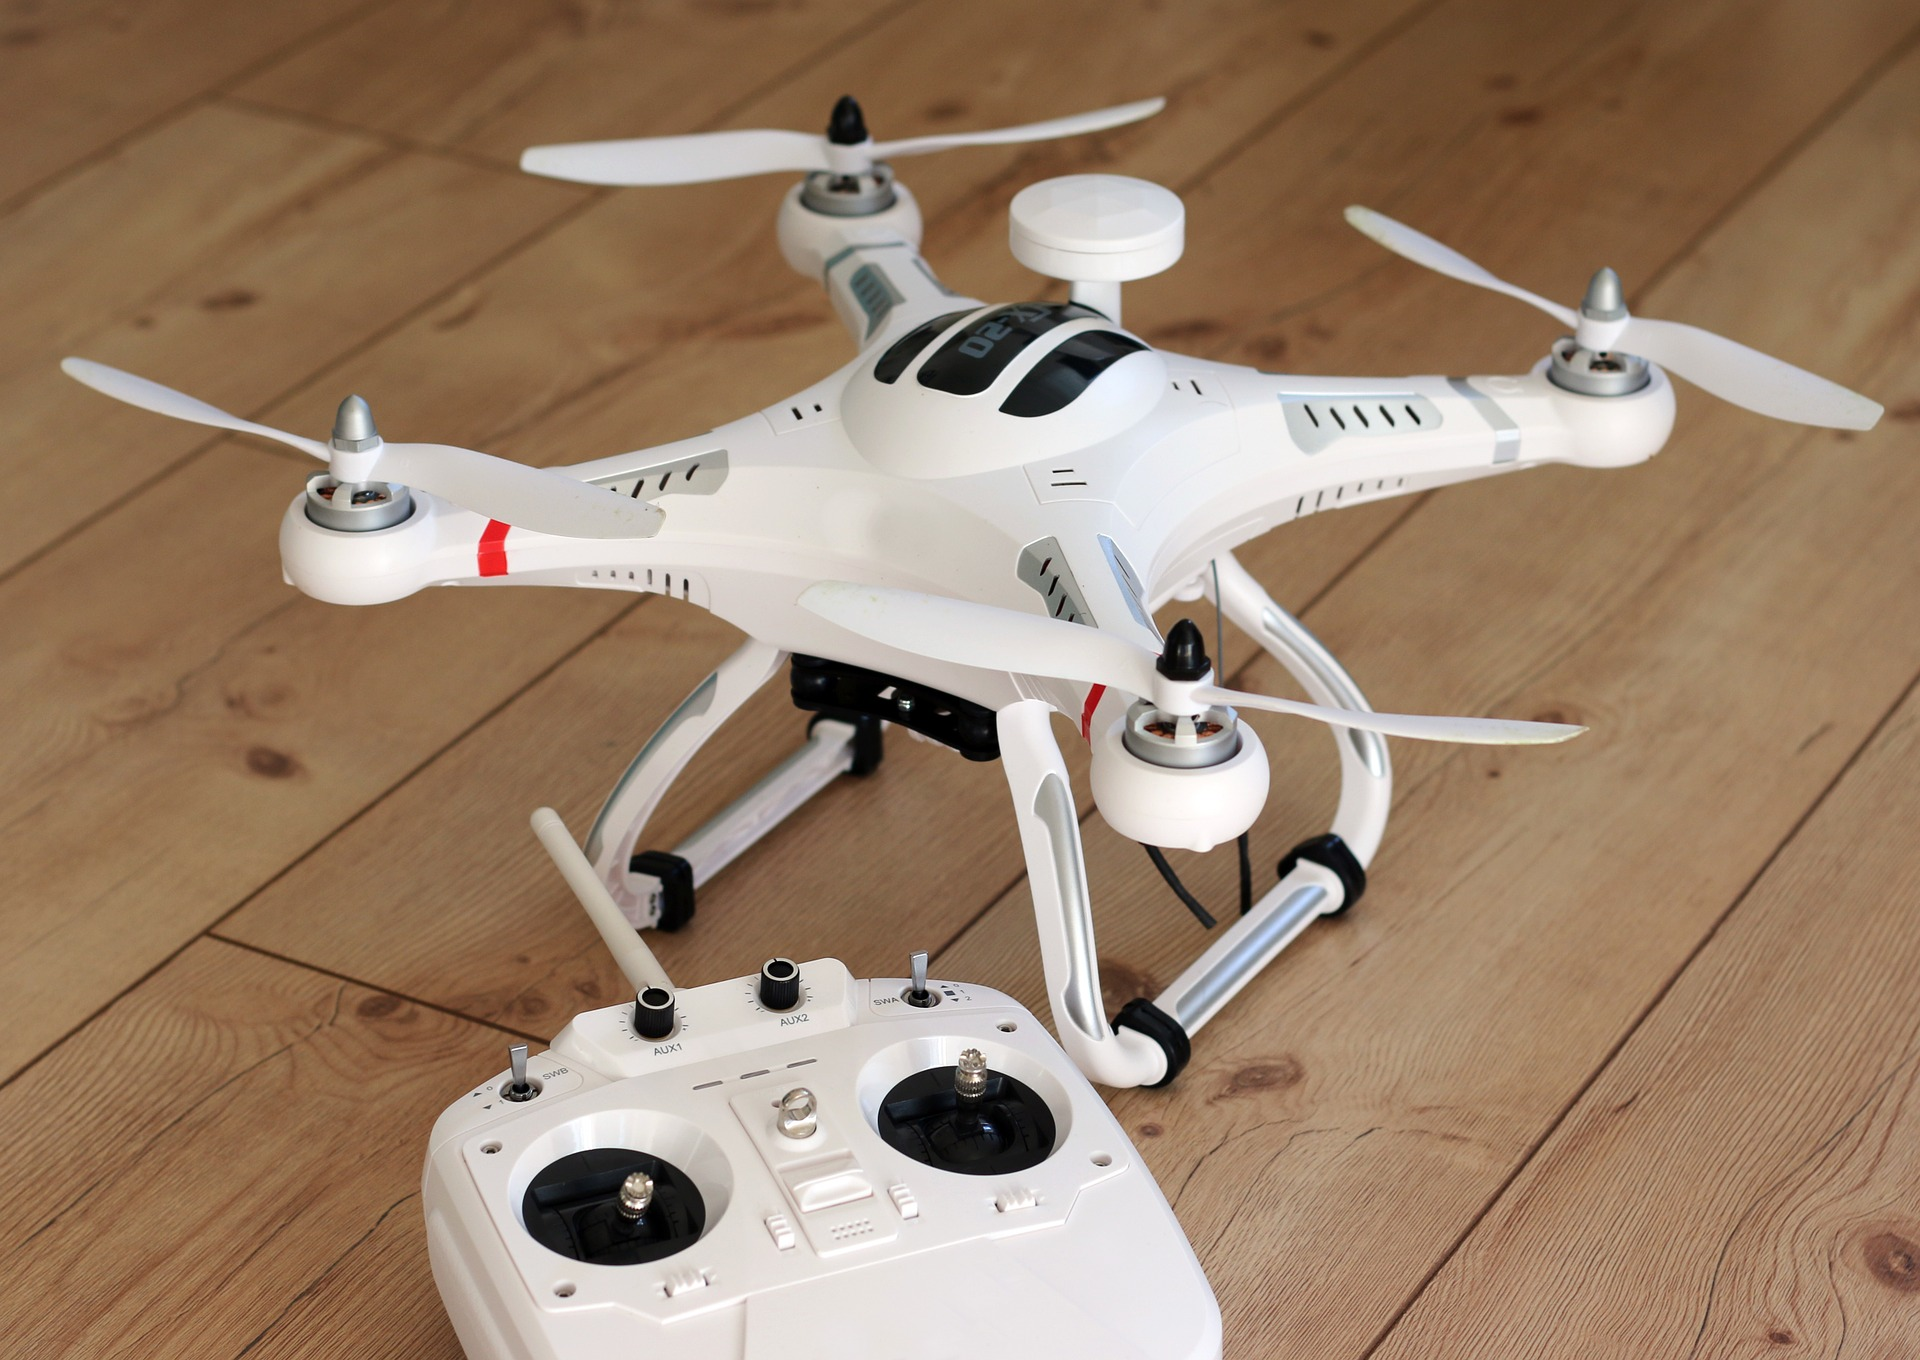 Drone with controller